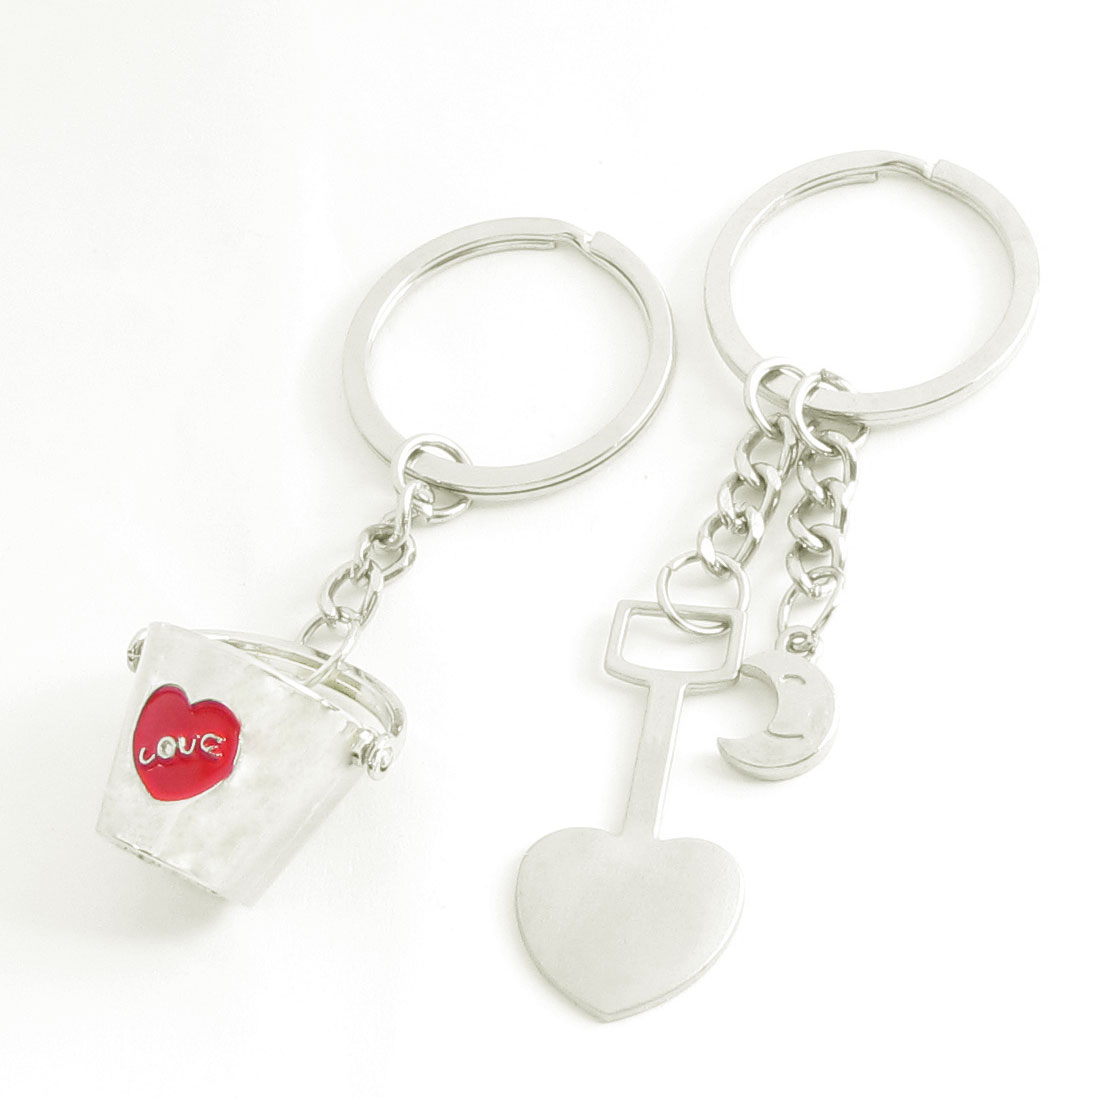 Bucket Heart Moon Design Pendent Keys Rings Chains Holders Pair for Lovers